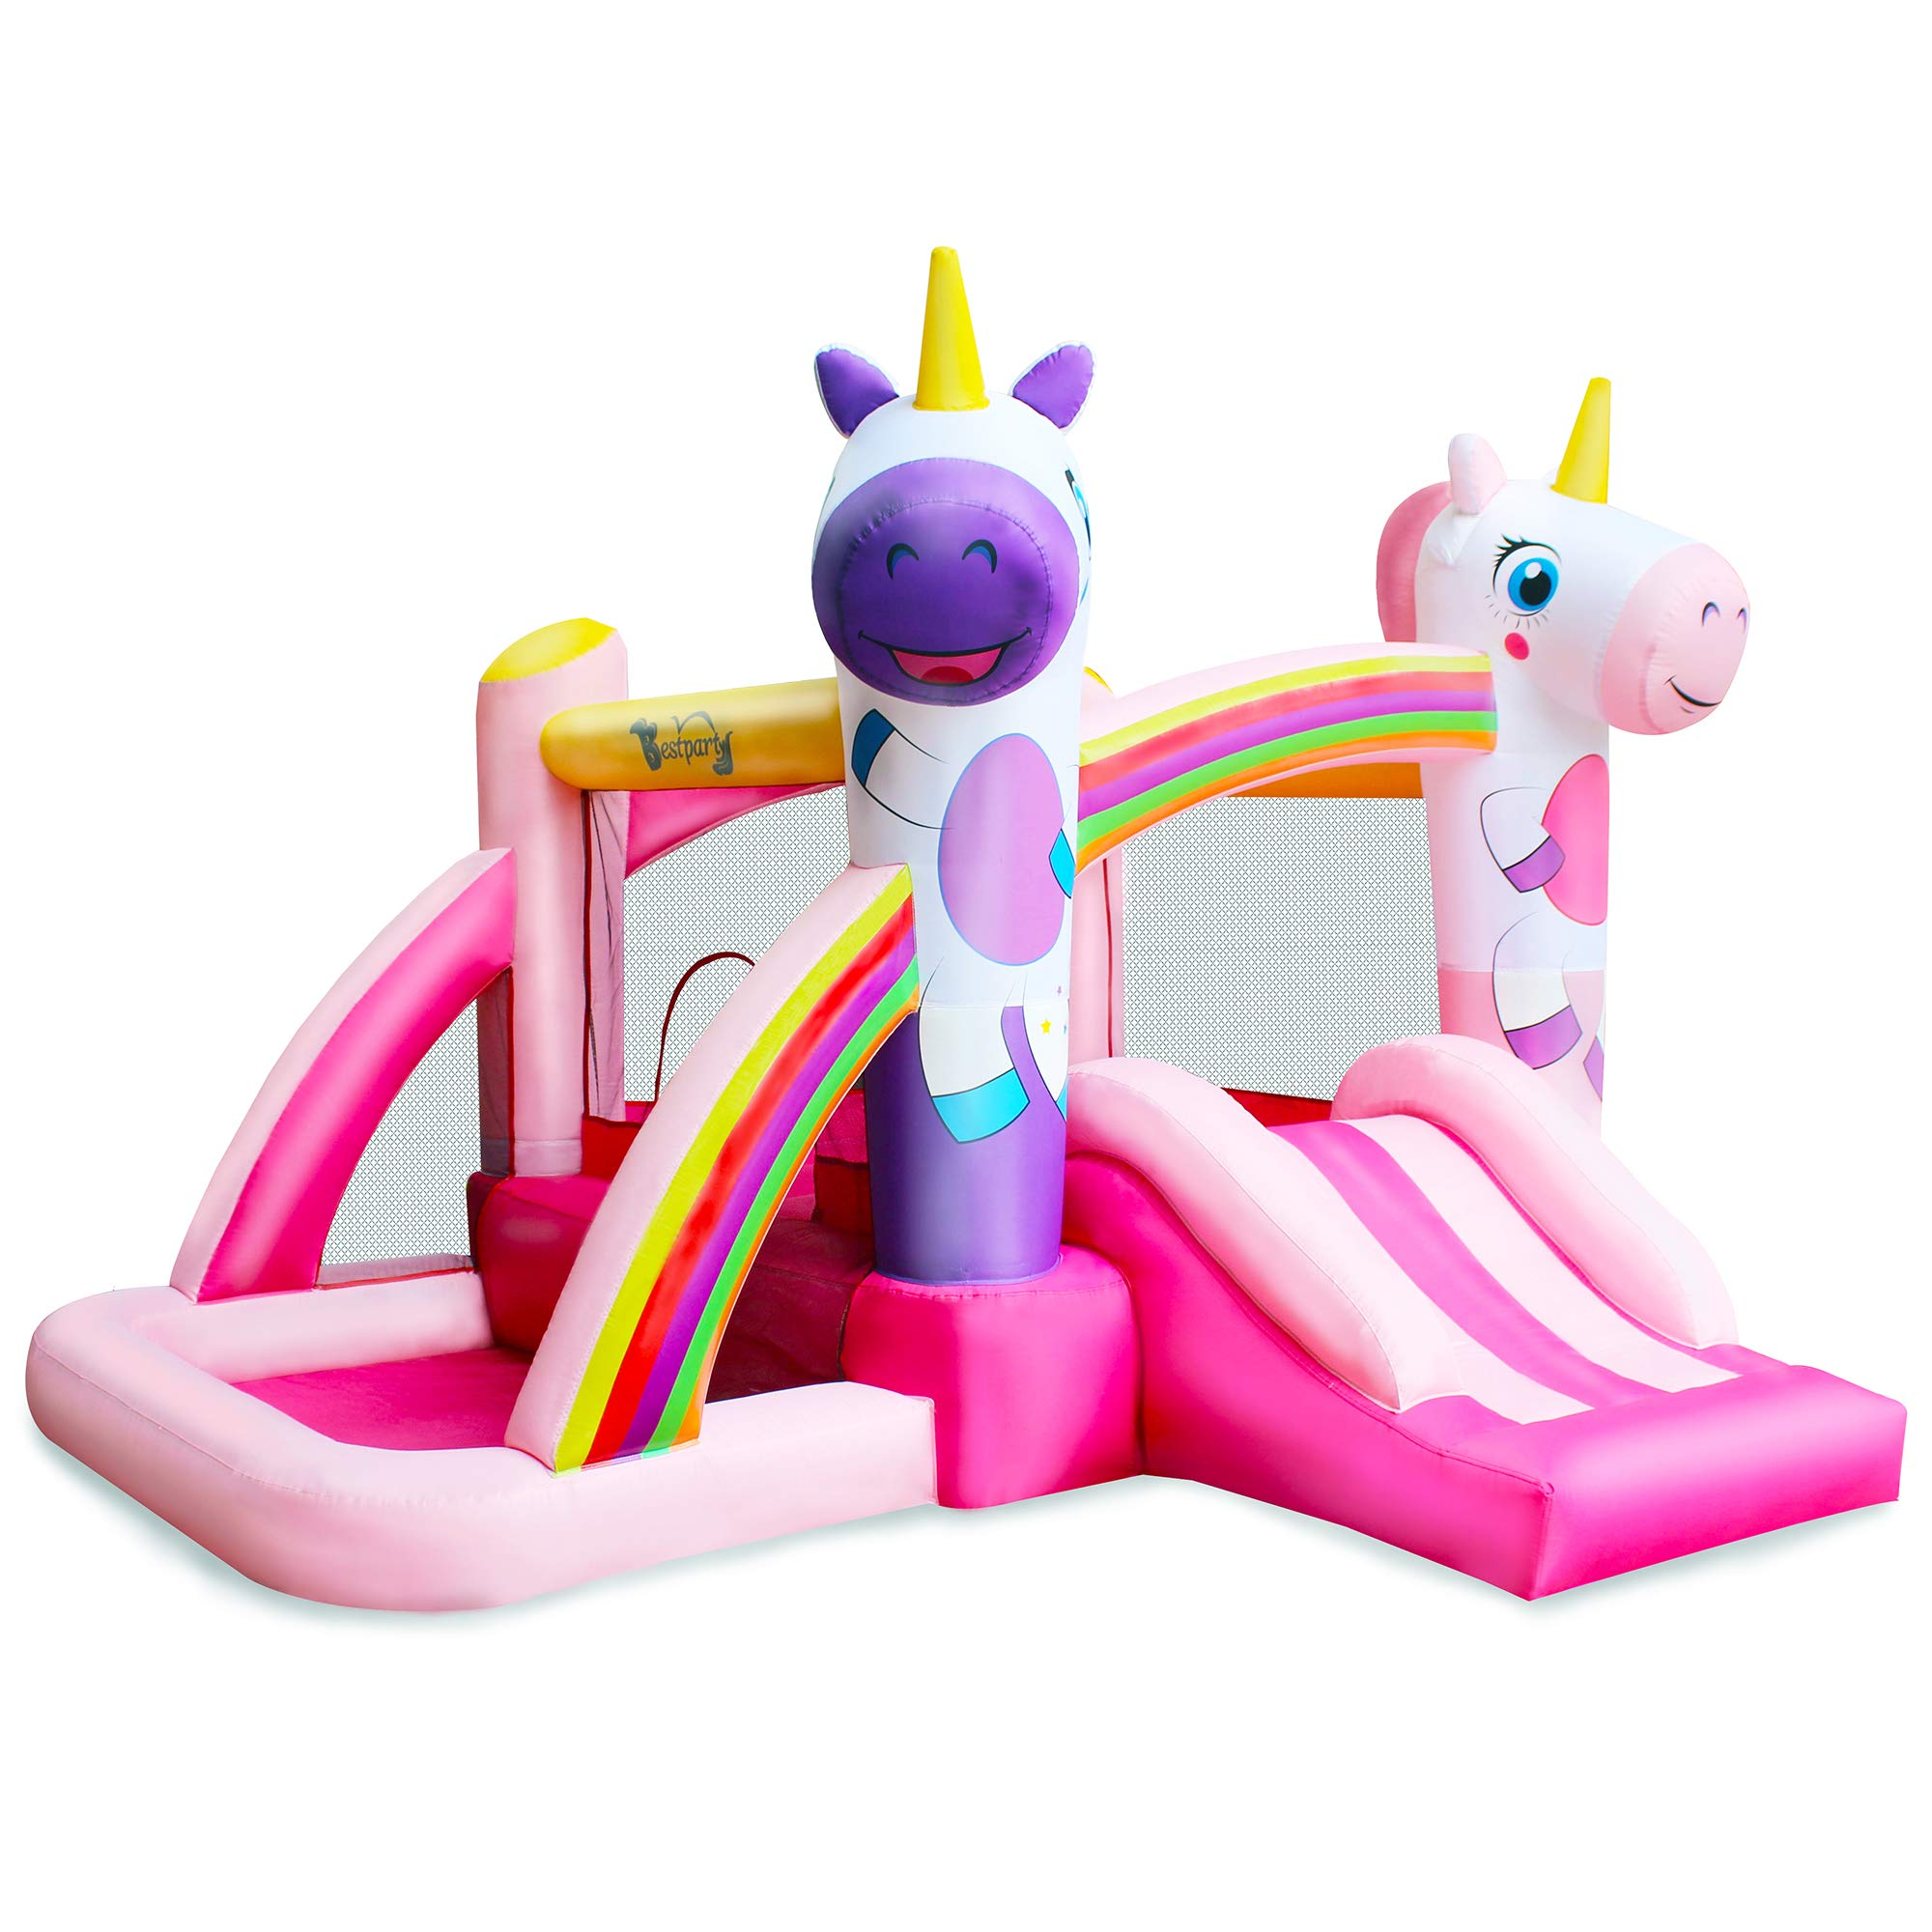 BESTPARTY Inflatable Bounce House with Slide for Princess Pink Unicorn Inflatable Bouncer House Jumper Houses by BESTPARTY (Image #1)